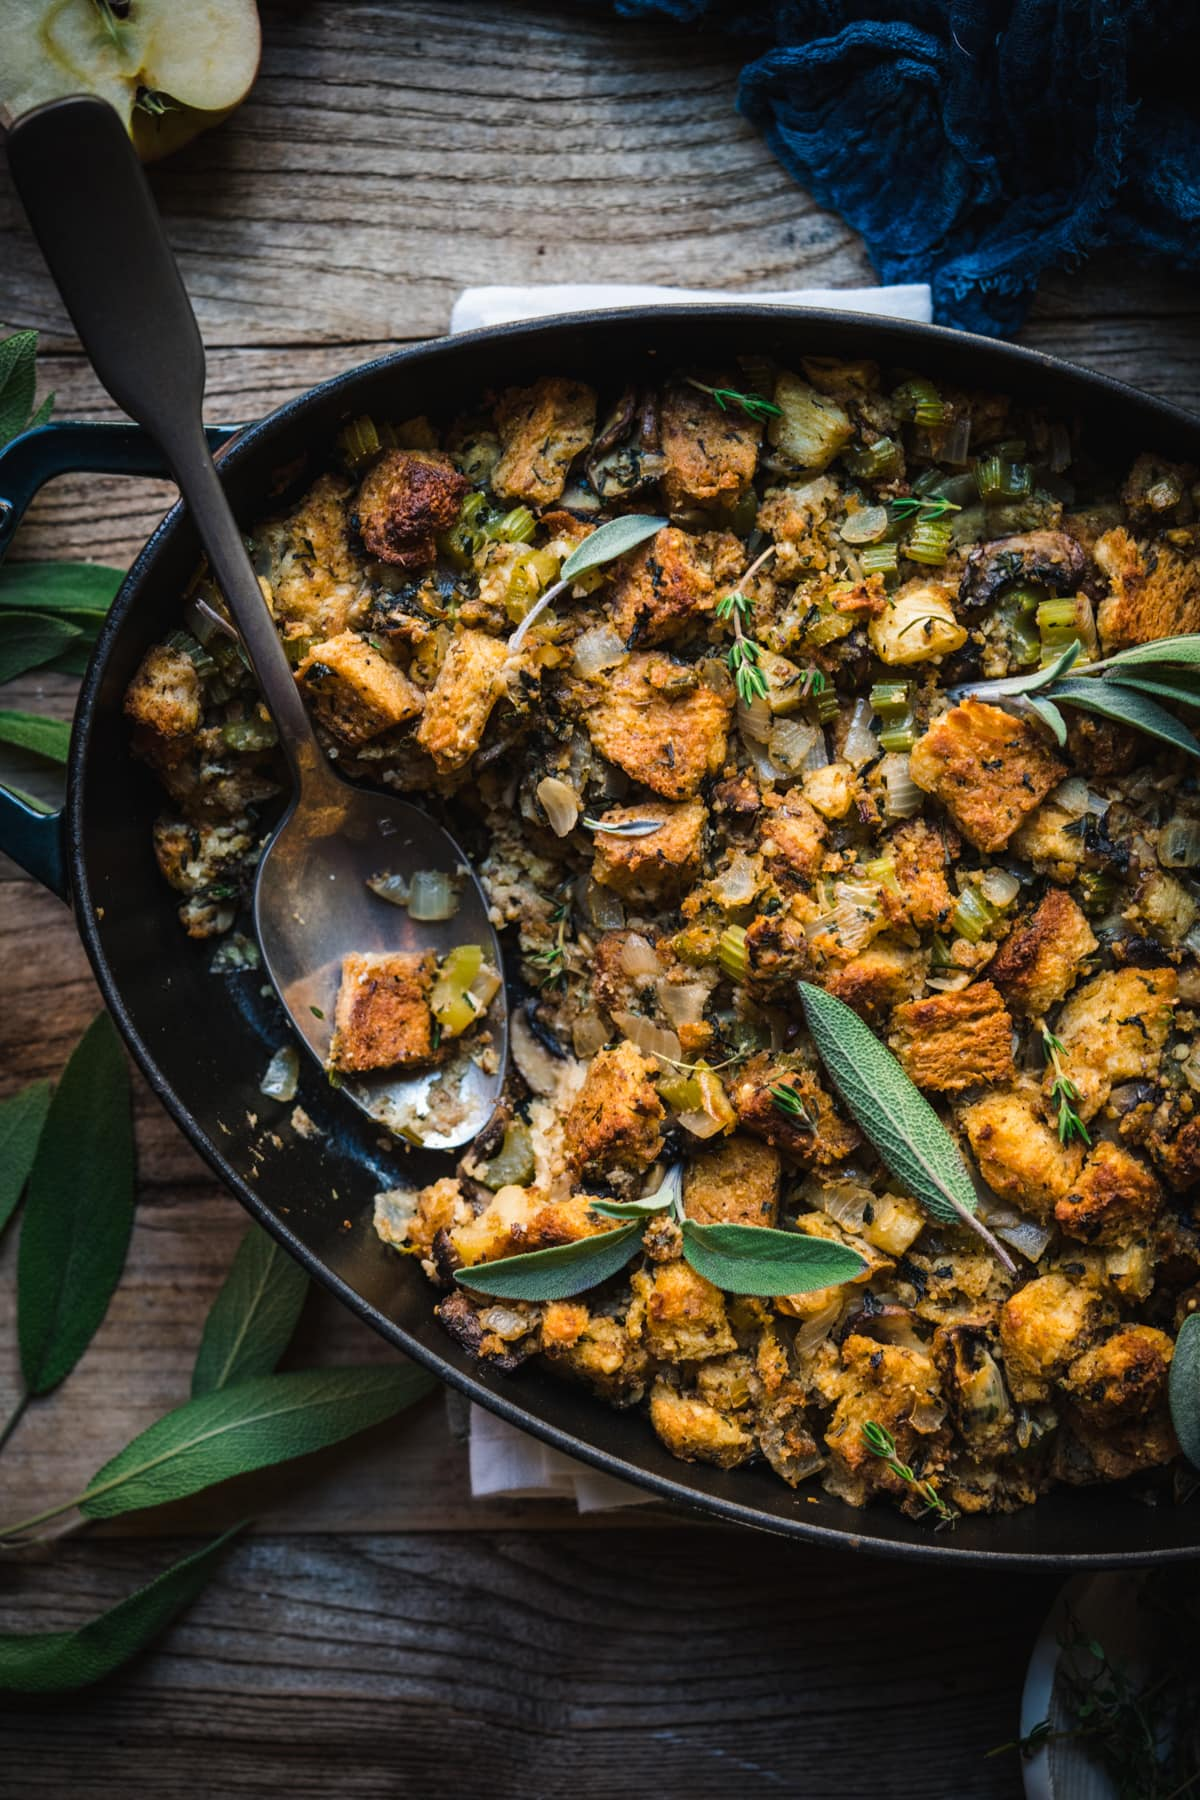 overhead view of gluten free vegan stuffing in an oval pan with serving spoon.